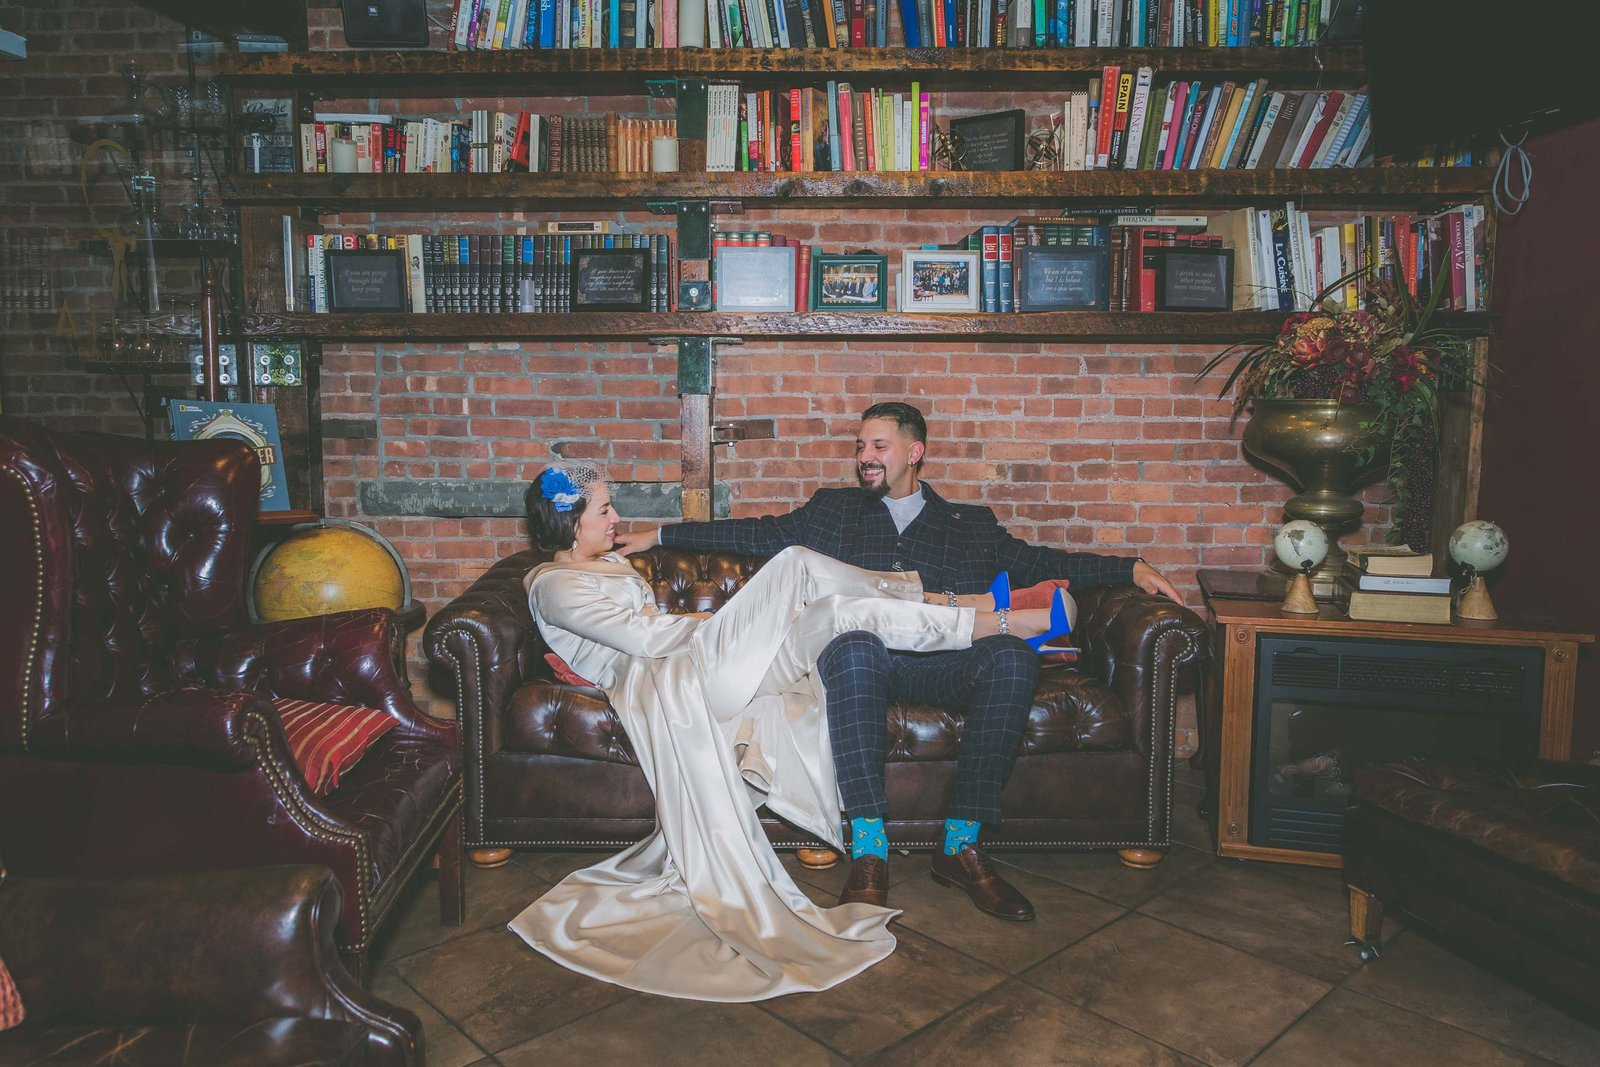 Bride puts feet on top of groom surrounded by books in Jersey City.